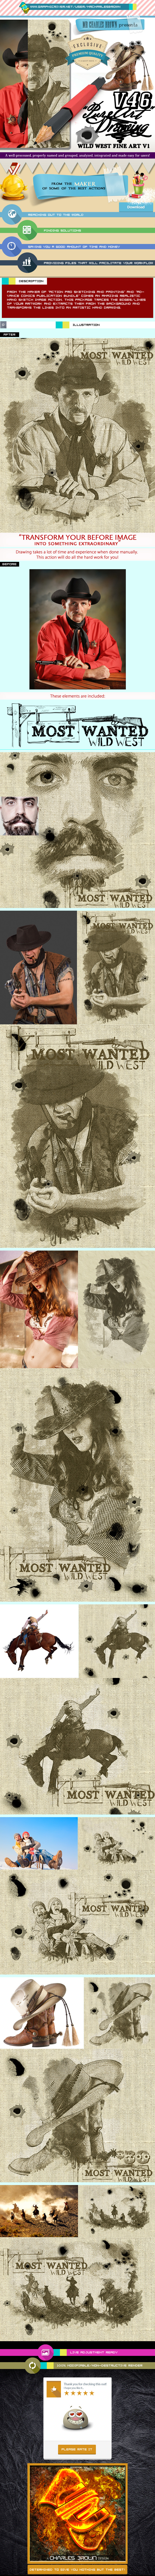 Operator graphics designs templates from graphicriver page 44 malvernweather Gallery